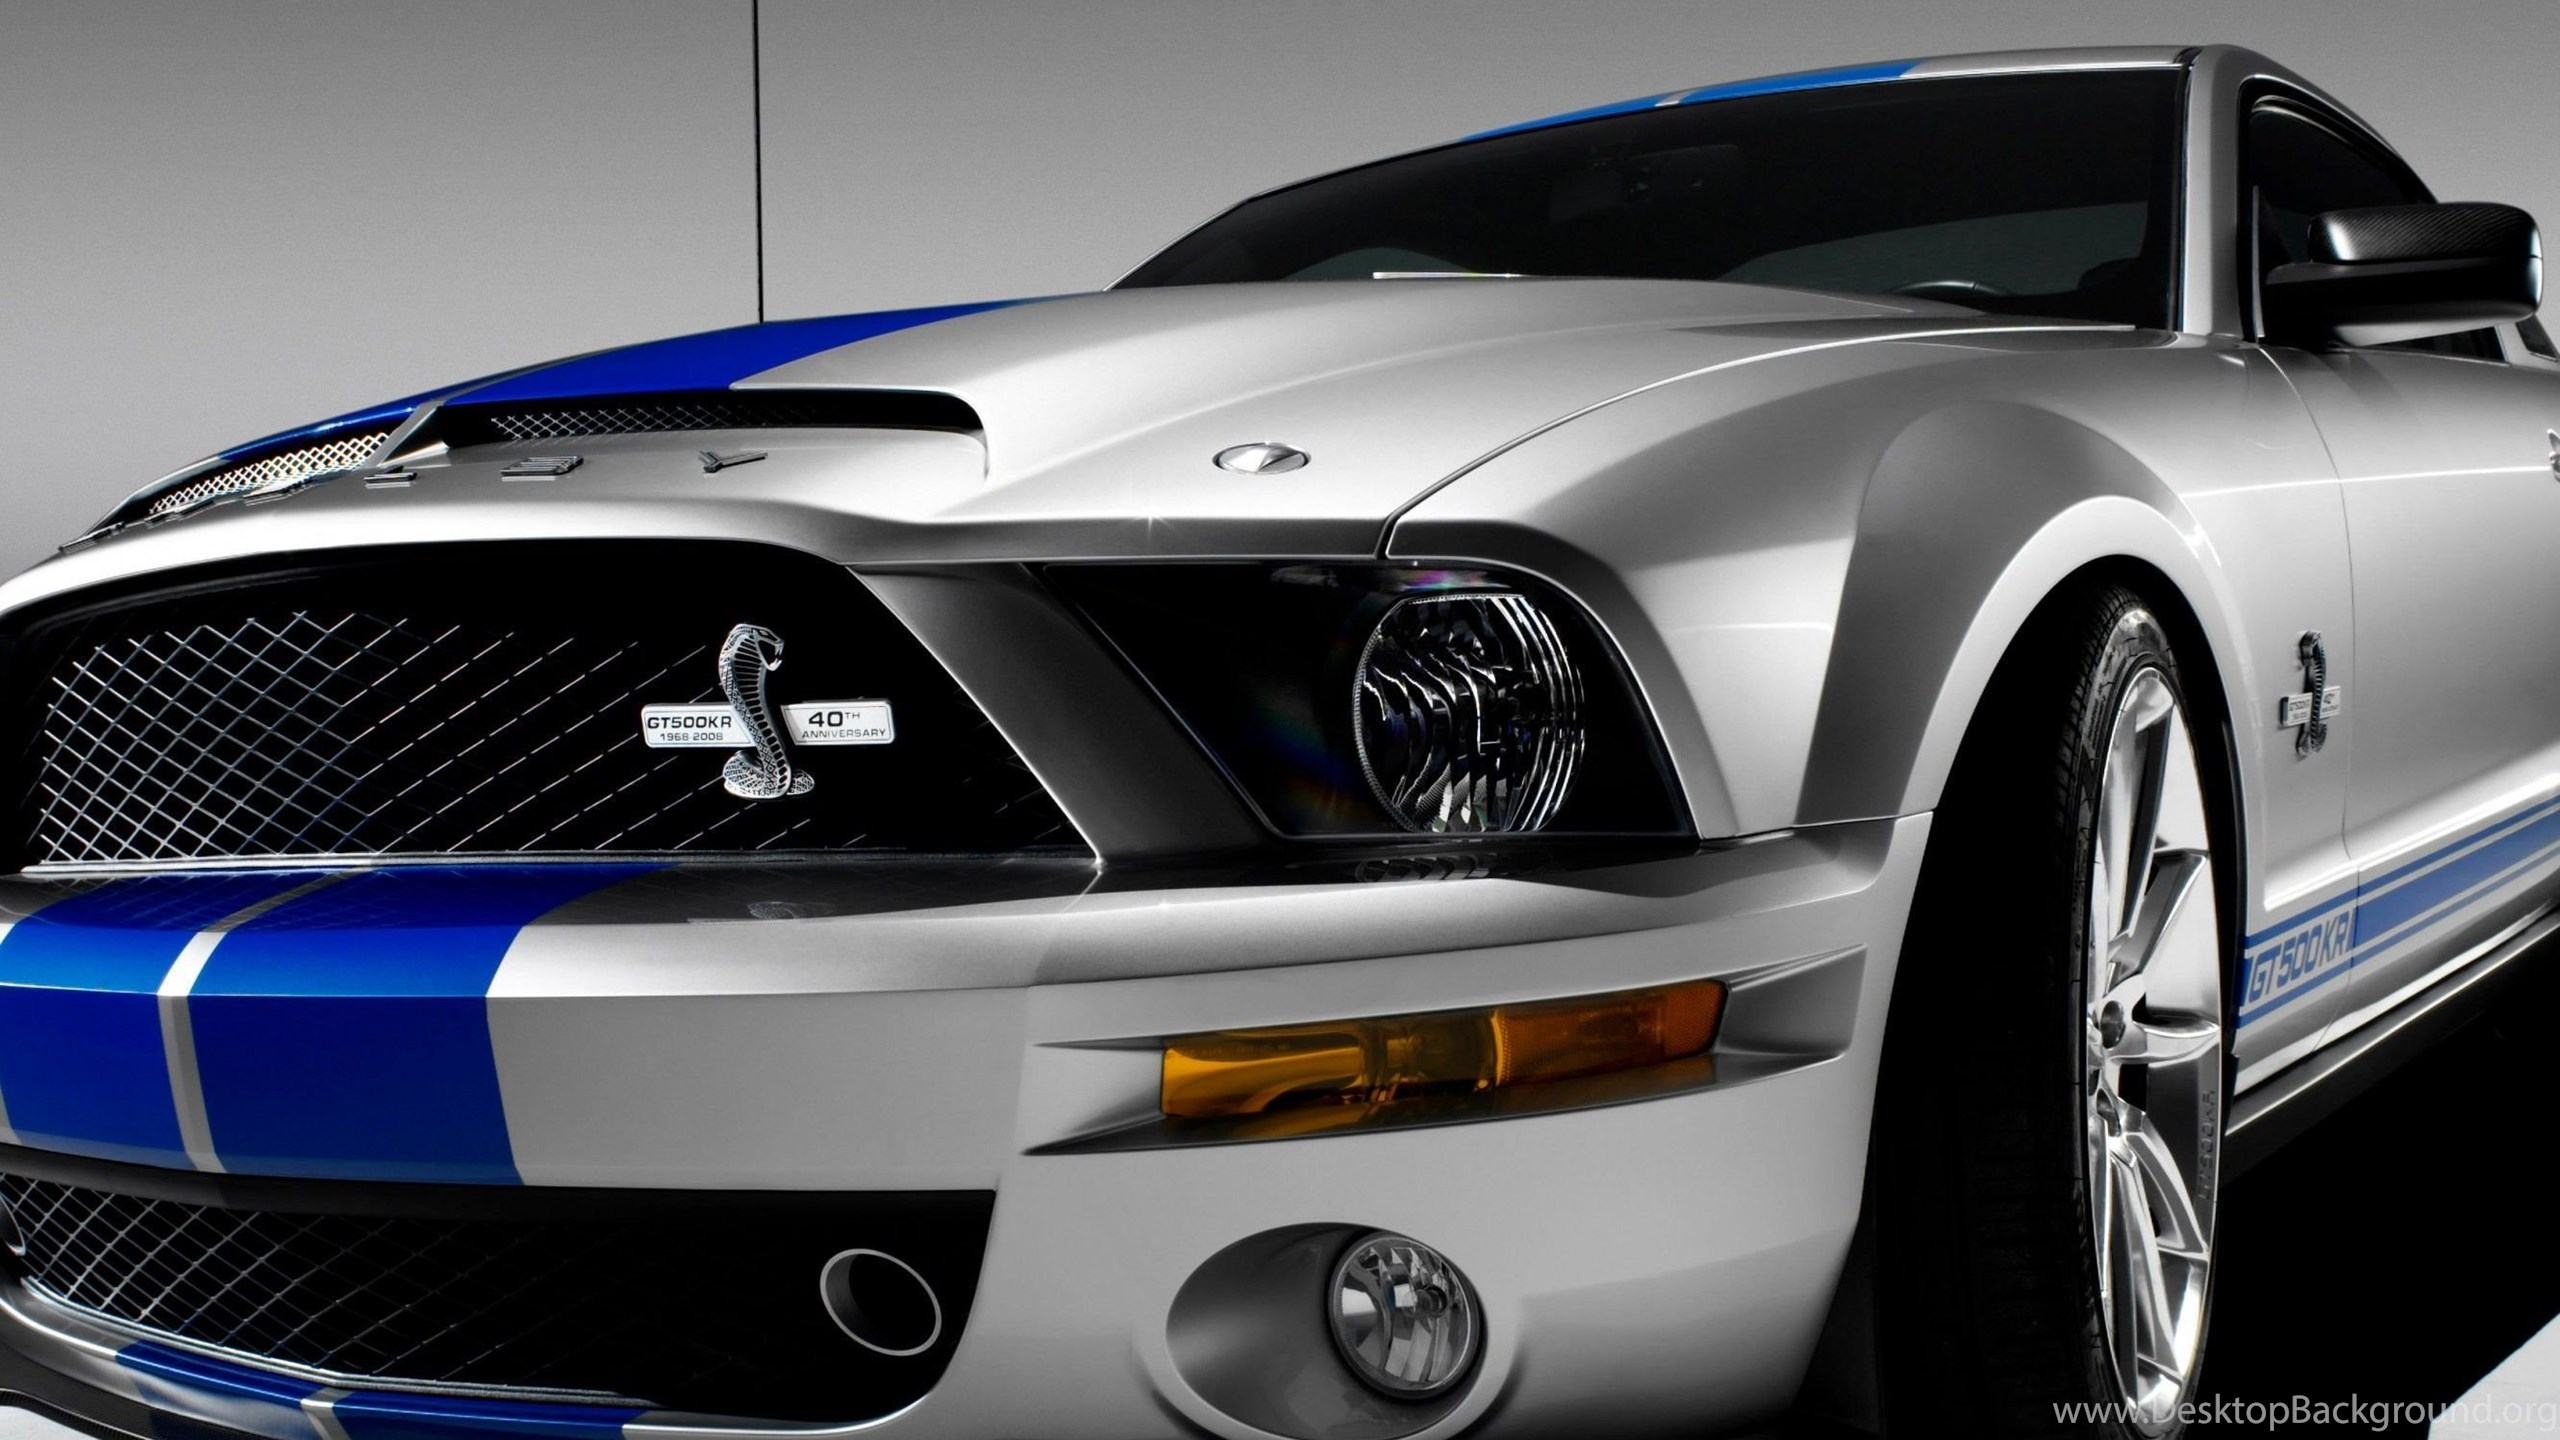 download shelby mustang gt500kr hd wallpapers for iphone 6 plus